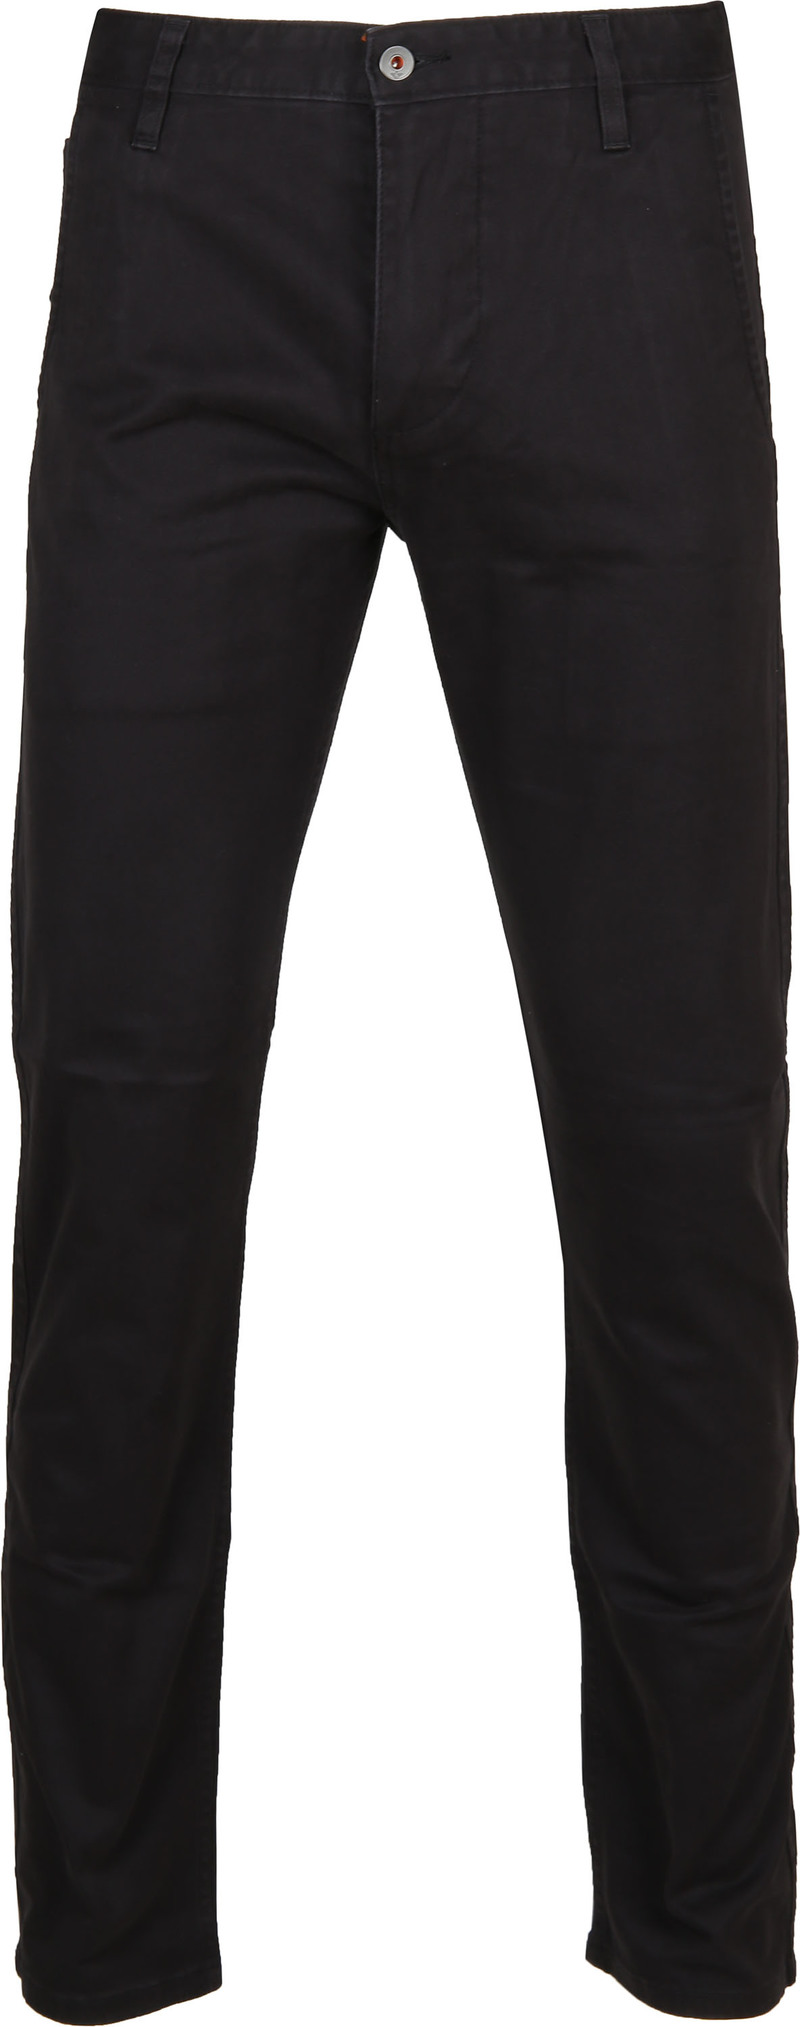 Dockers Trousers Alpha Stretch Black photo 0